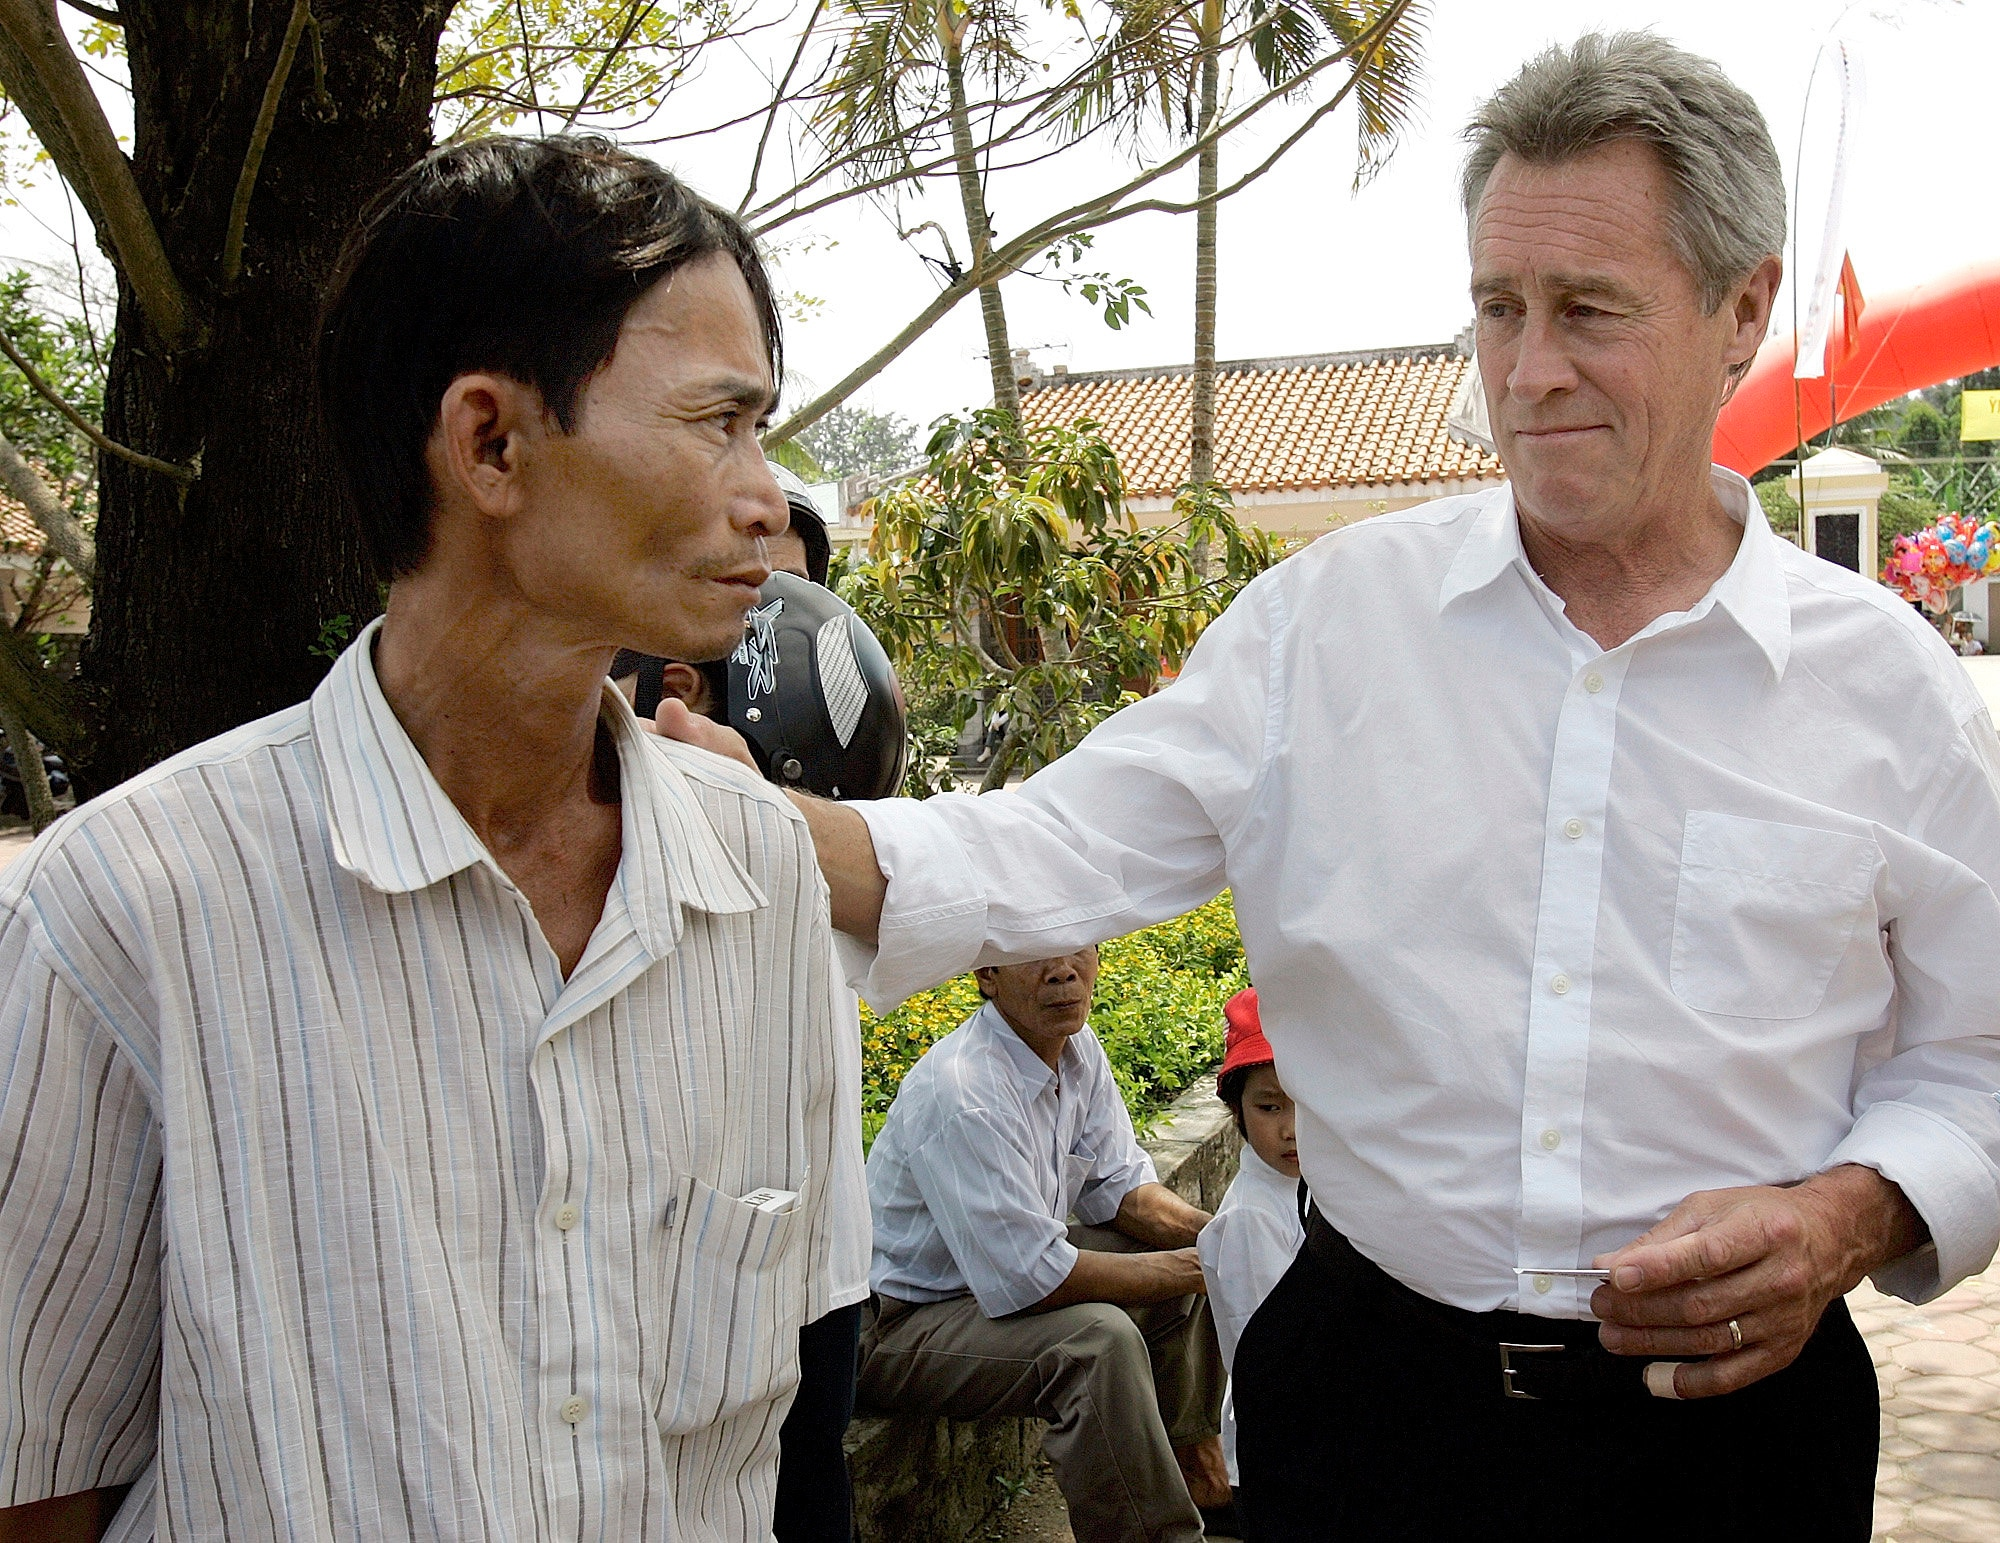 Lawrence Colburn dies; helped end Vietnam's My Lai massacre